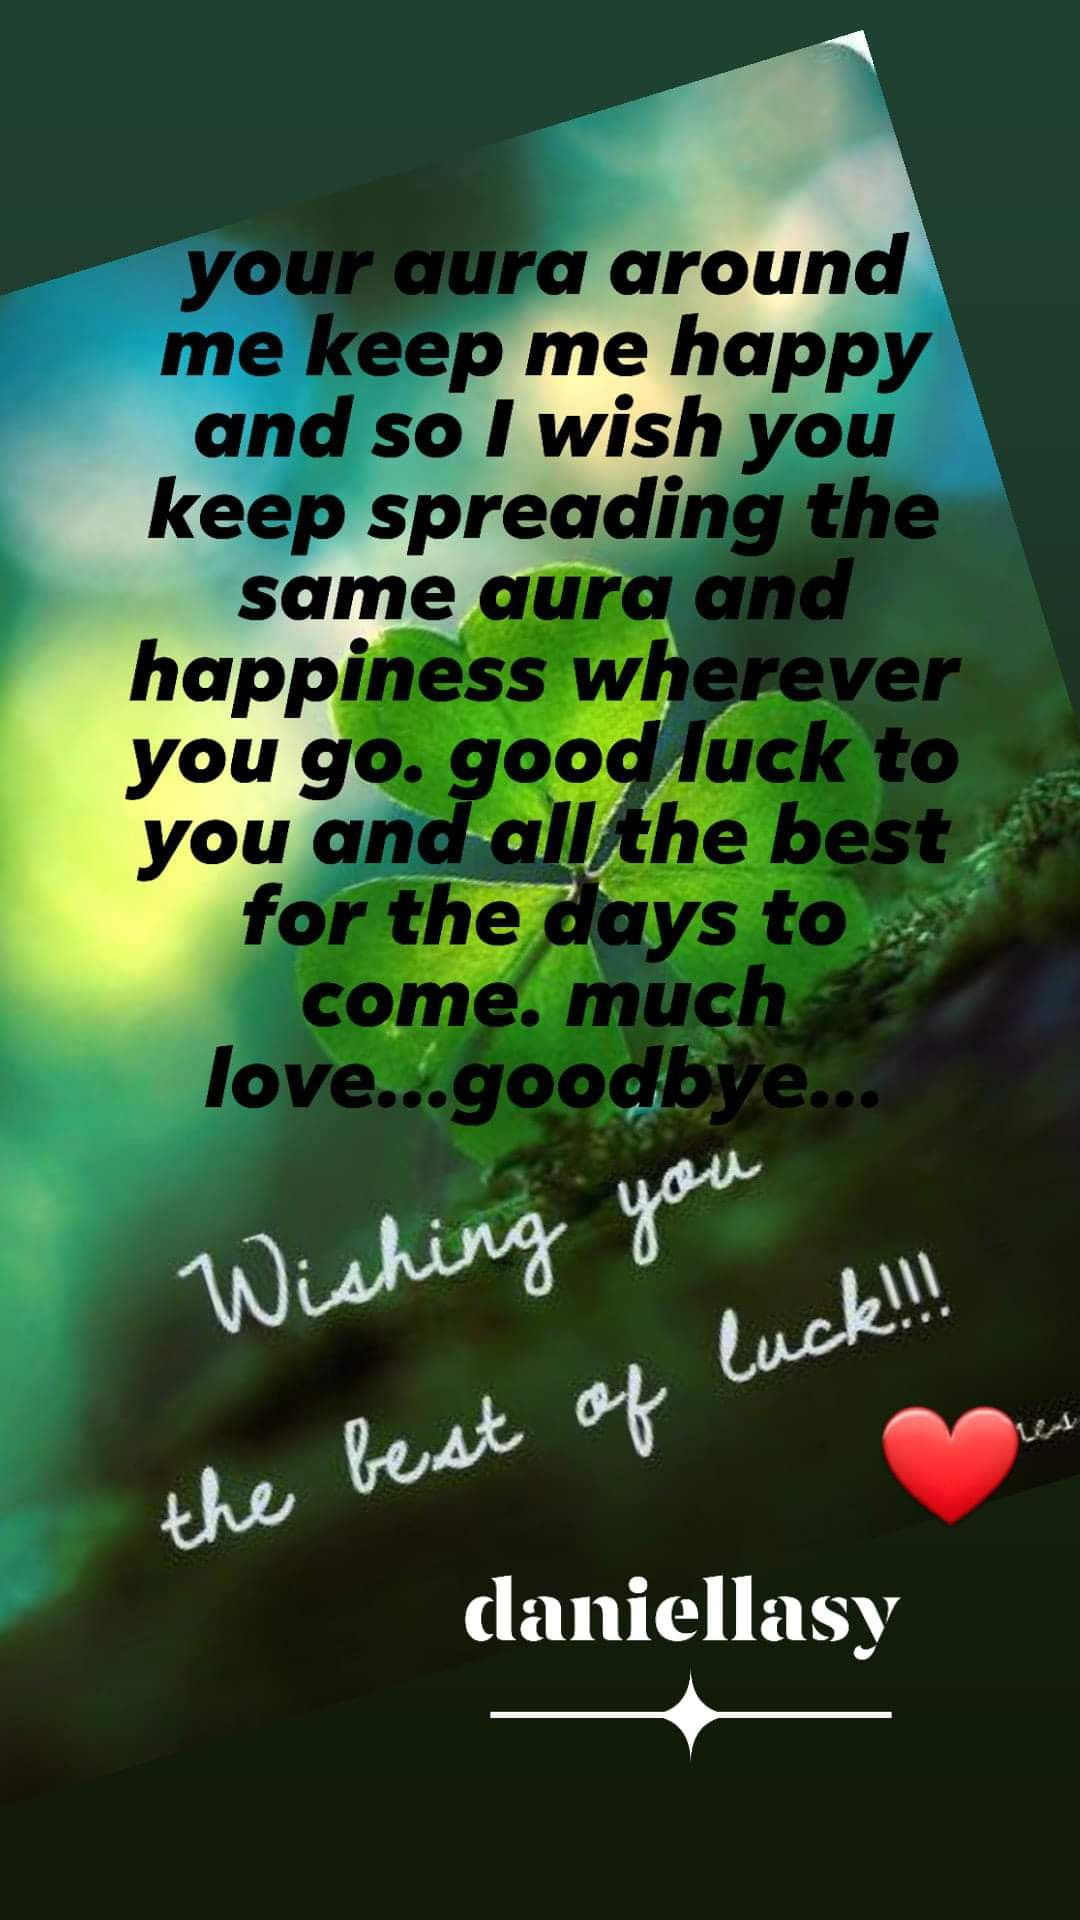 I Wish You The Best : Around, Happy, Spreading, Happiness, Wherever